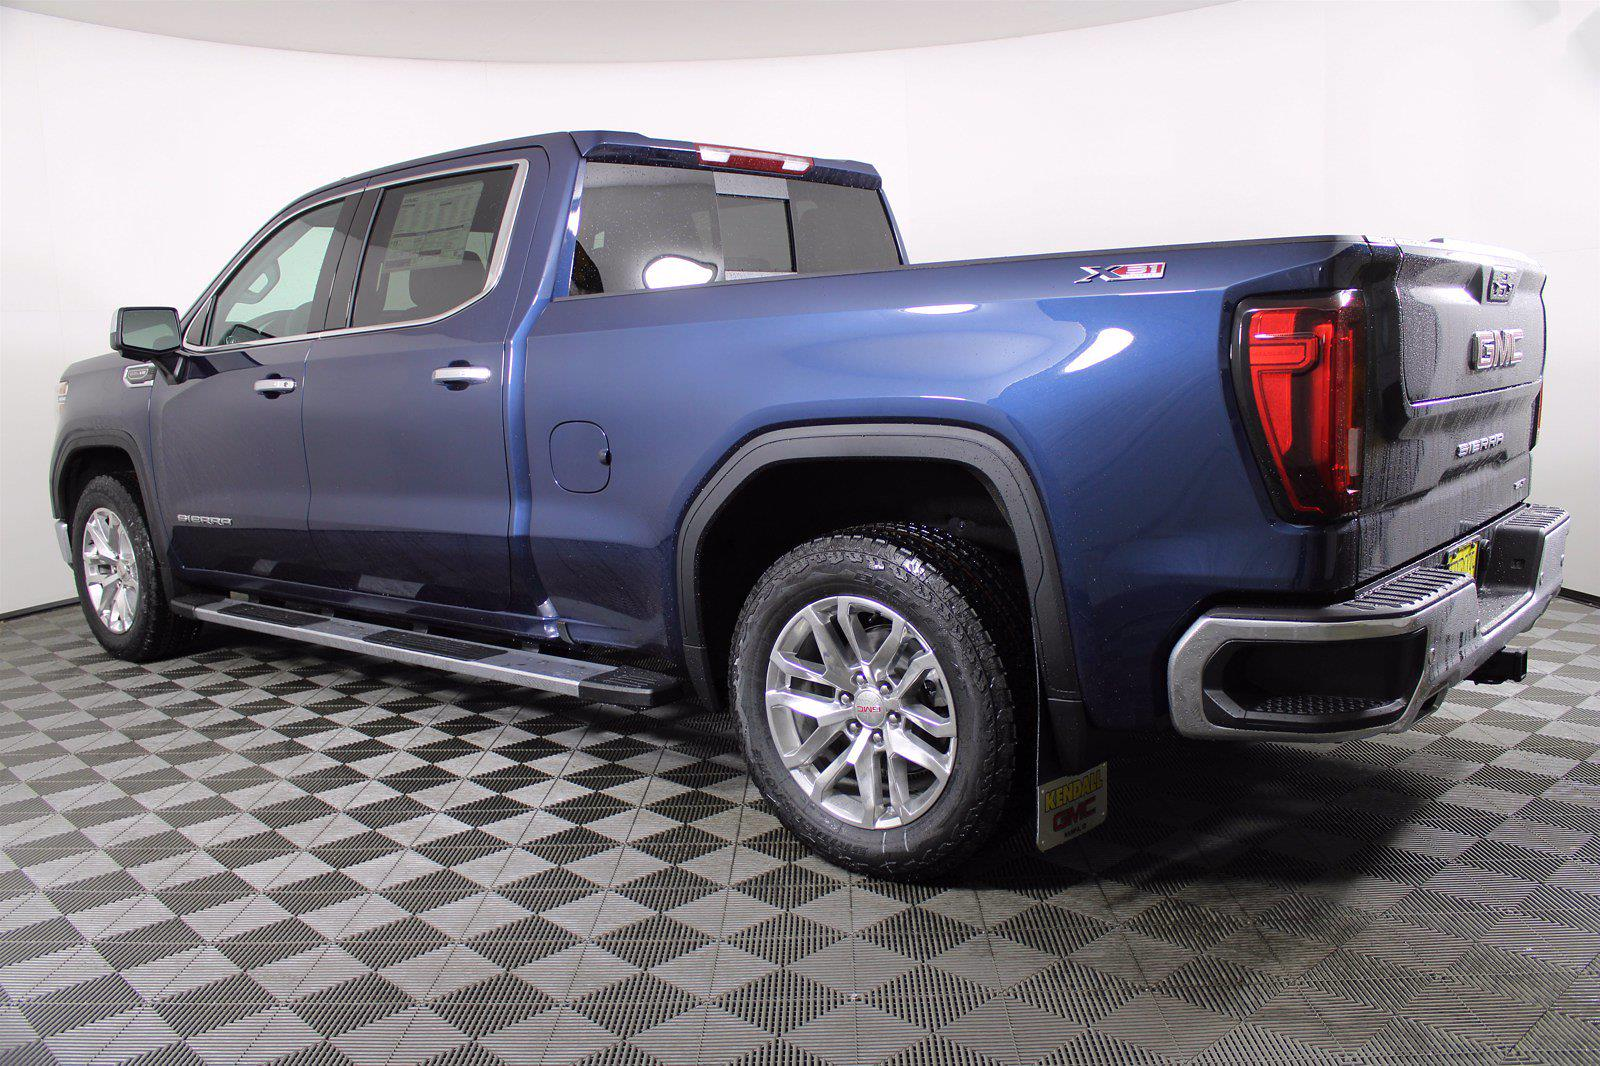 2021 GMC Sierra 1500 Crew Cab 4x4, Pickup #D410593 - photo 1